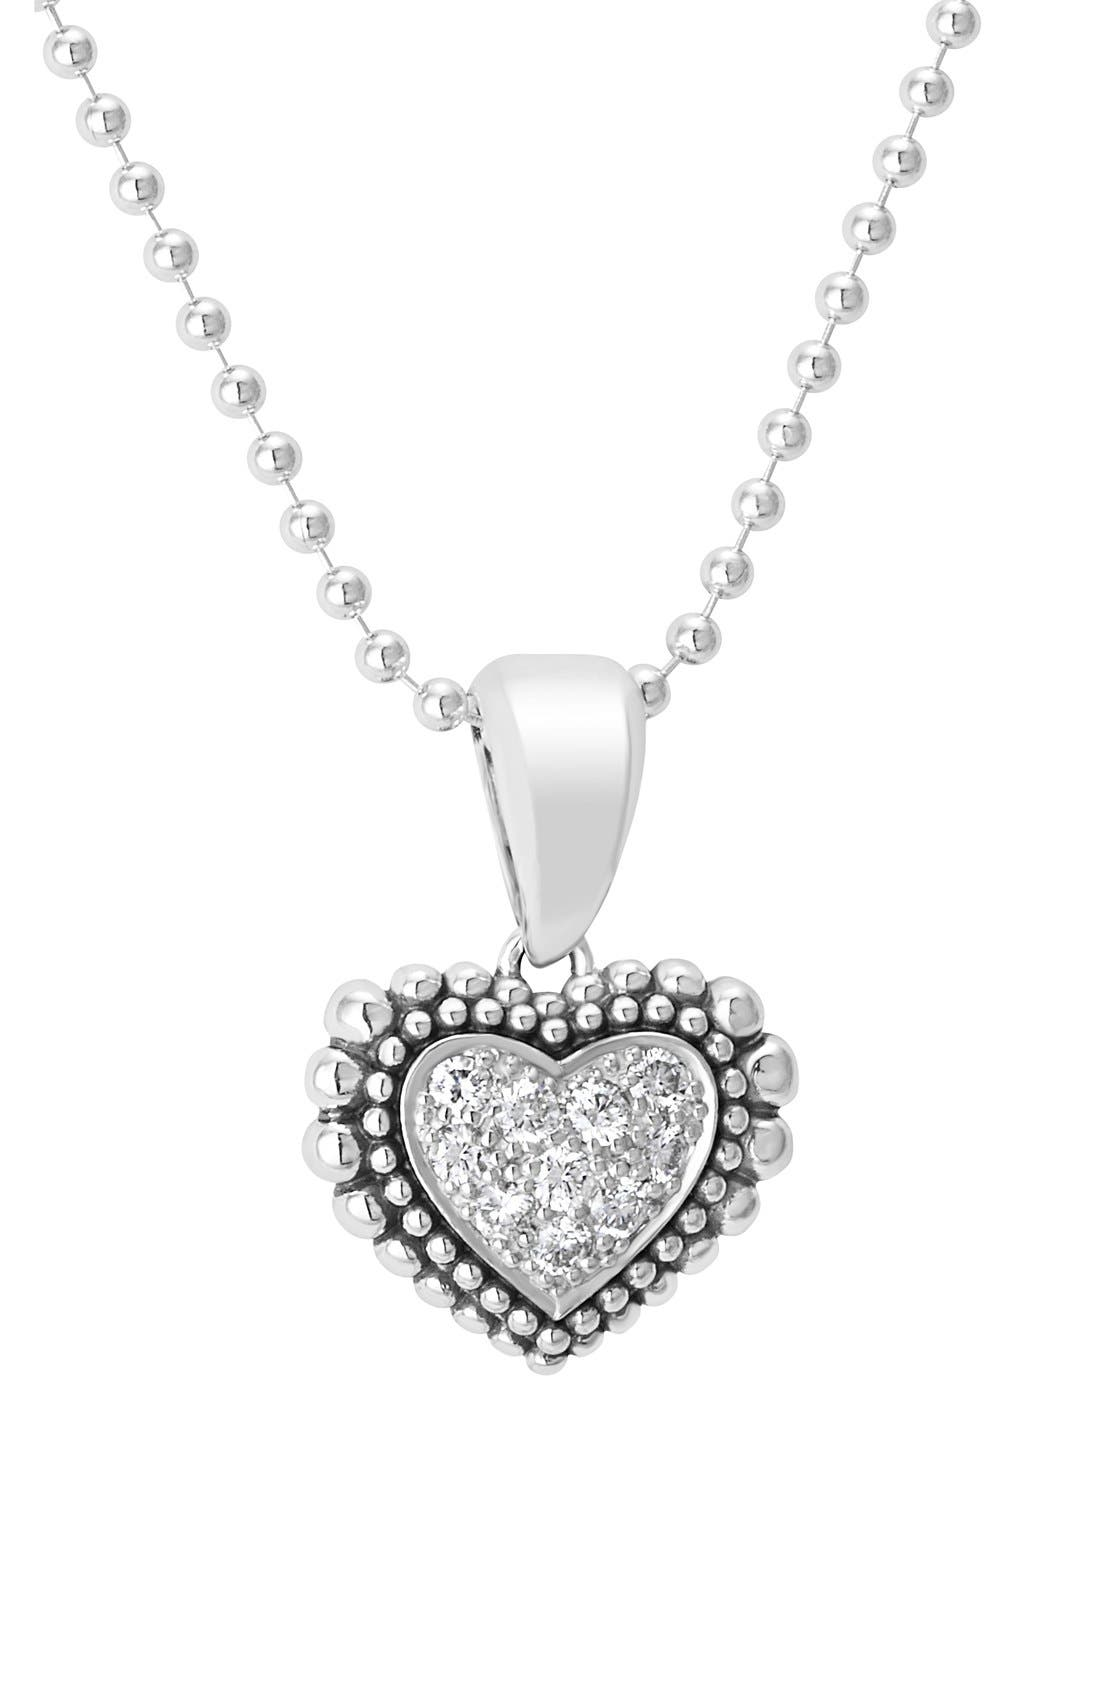 Diamond Heart Pendant Necklace,                             Alternate thumbnail 3, color,                             Silver